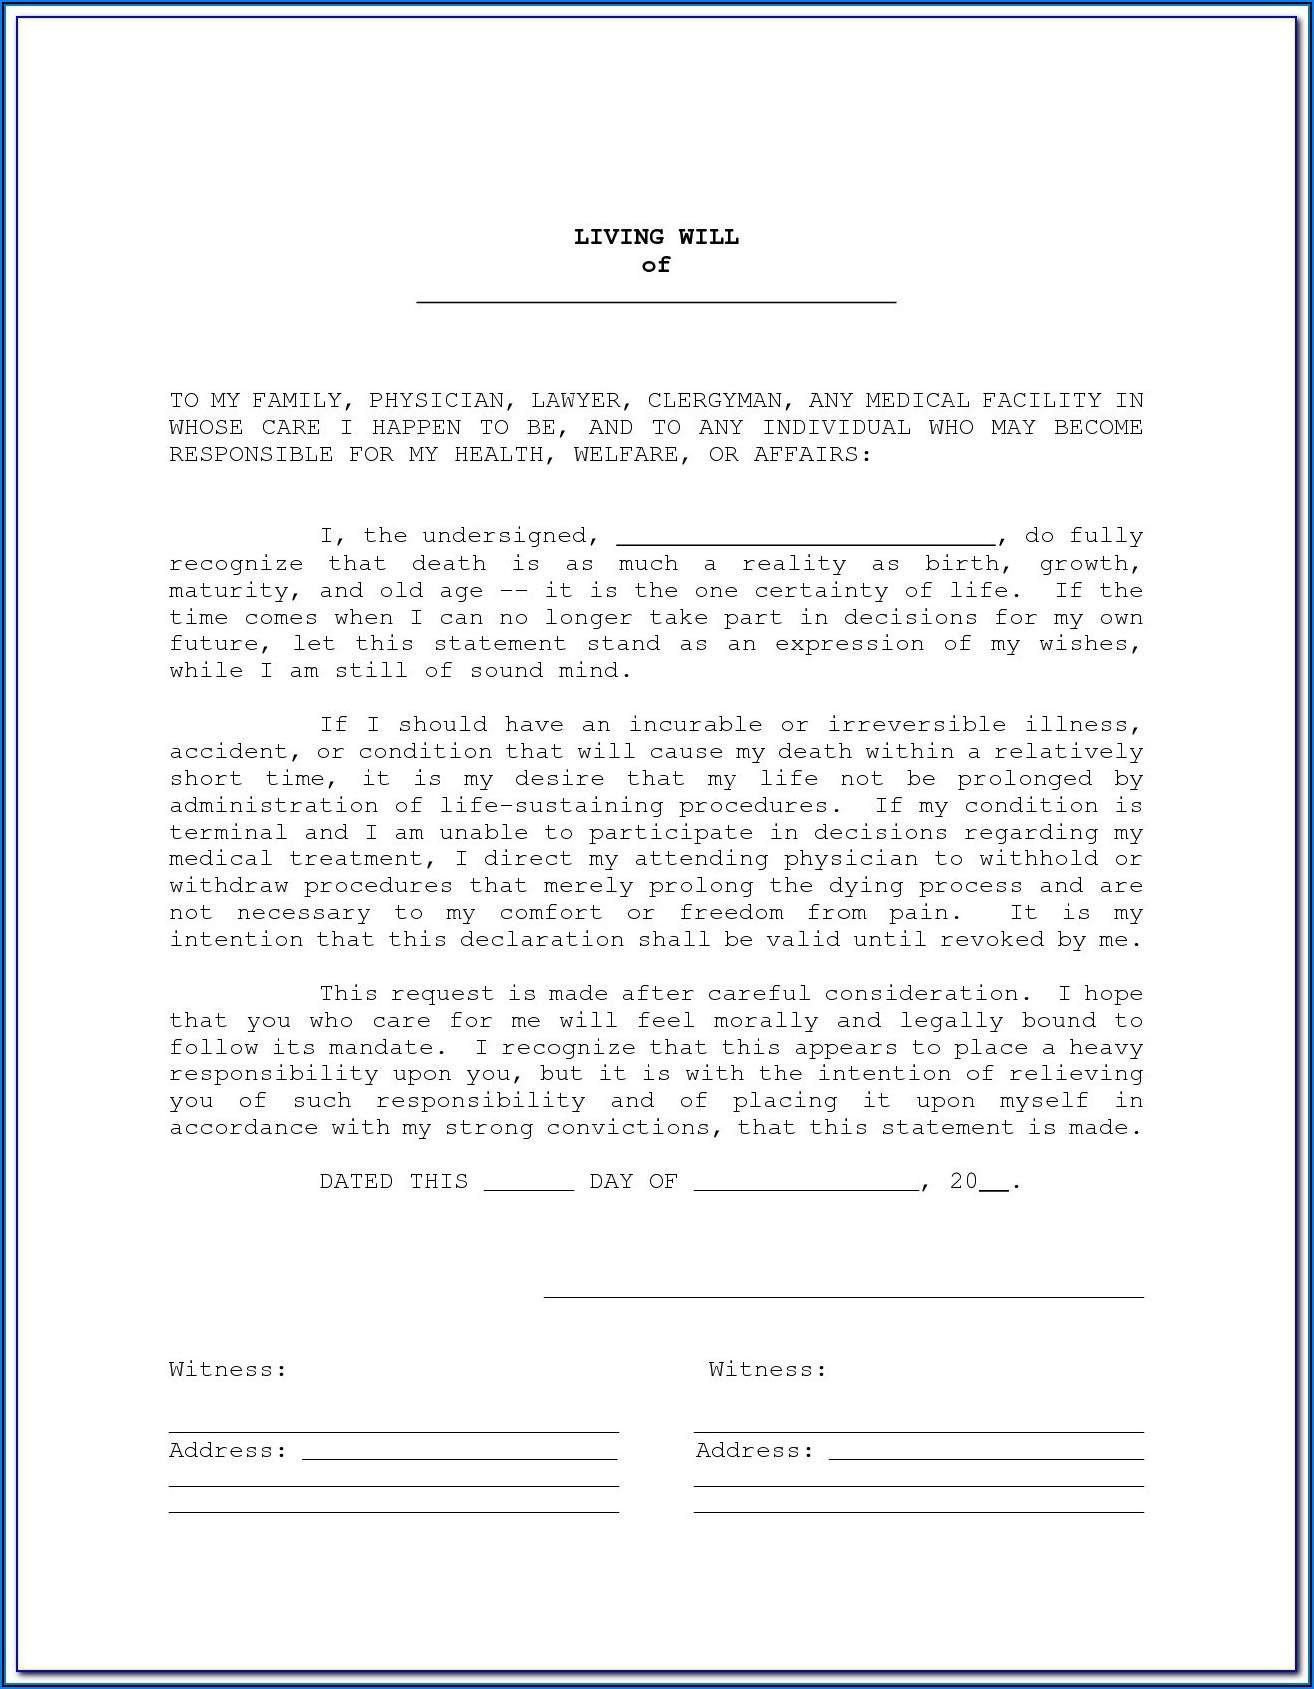 Va Form For Living Will